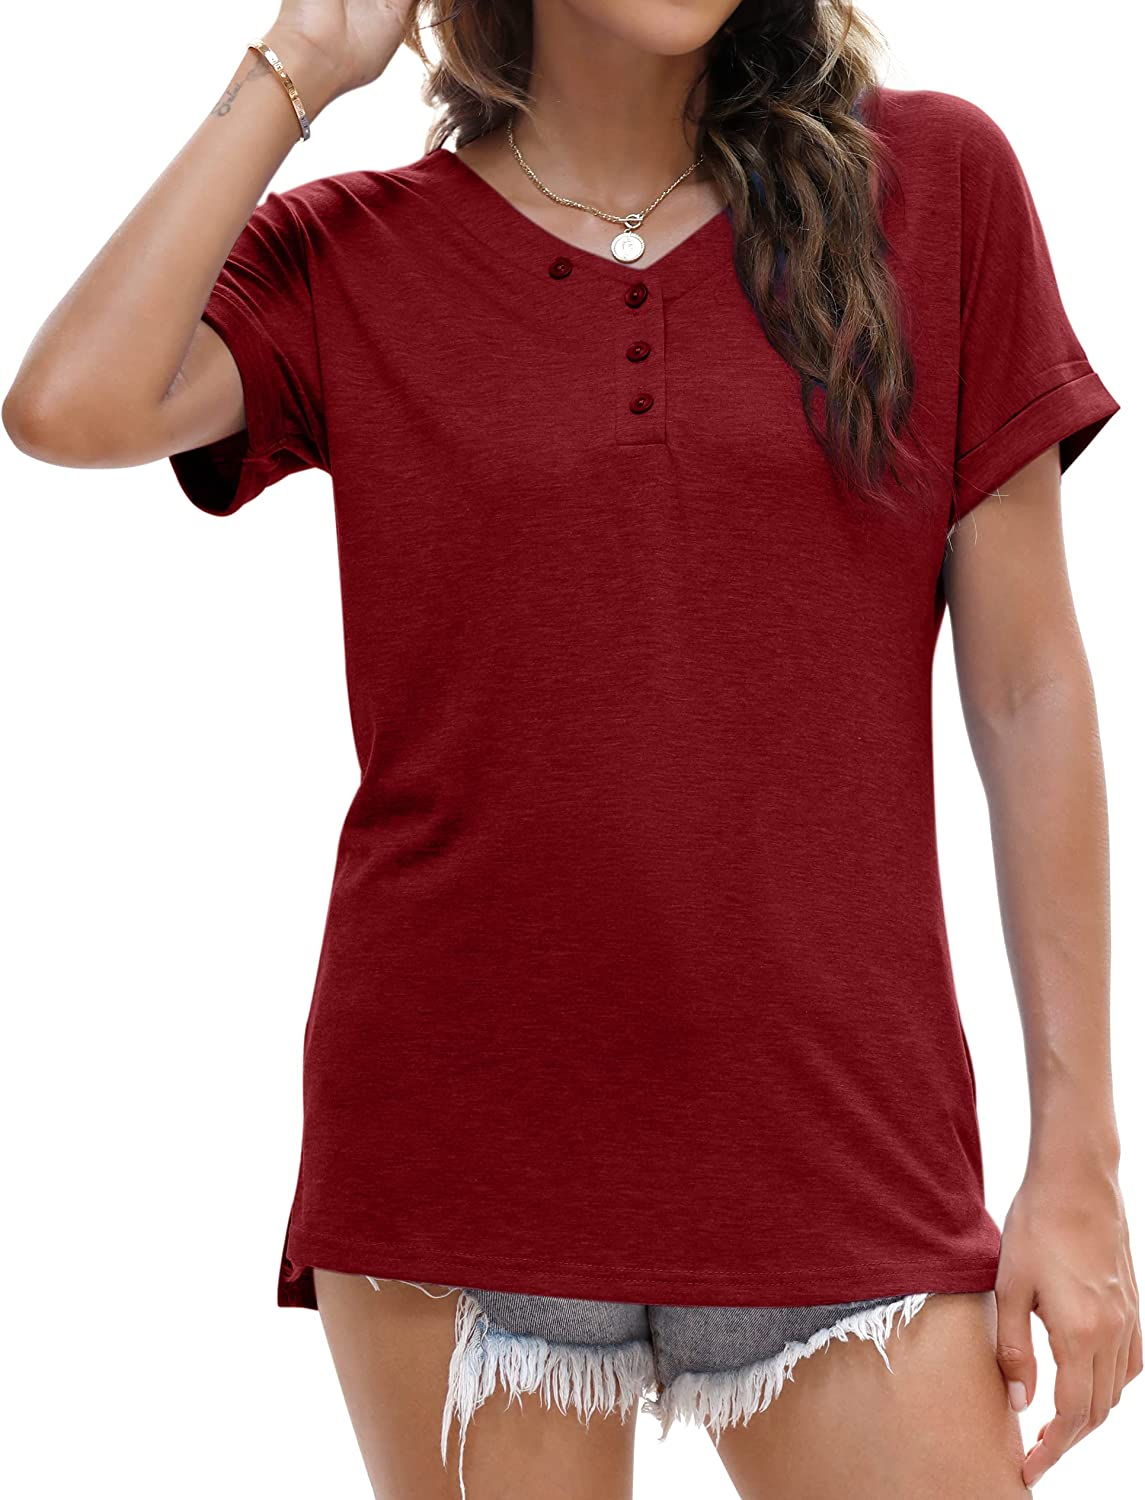 BESFLY Ladies Summer Tops Tunic Tops for Women to Wear with Leggings Short Sleeve Sexy V Neck T Shirt